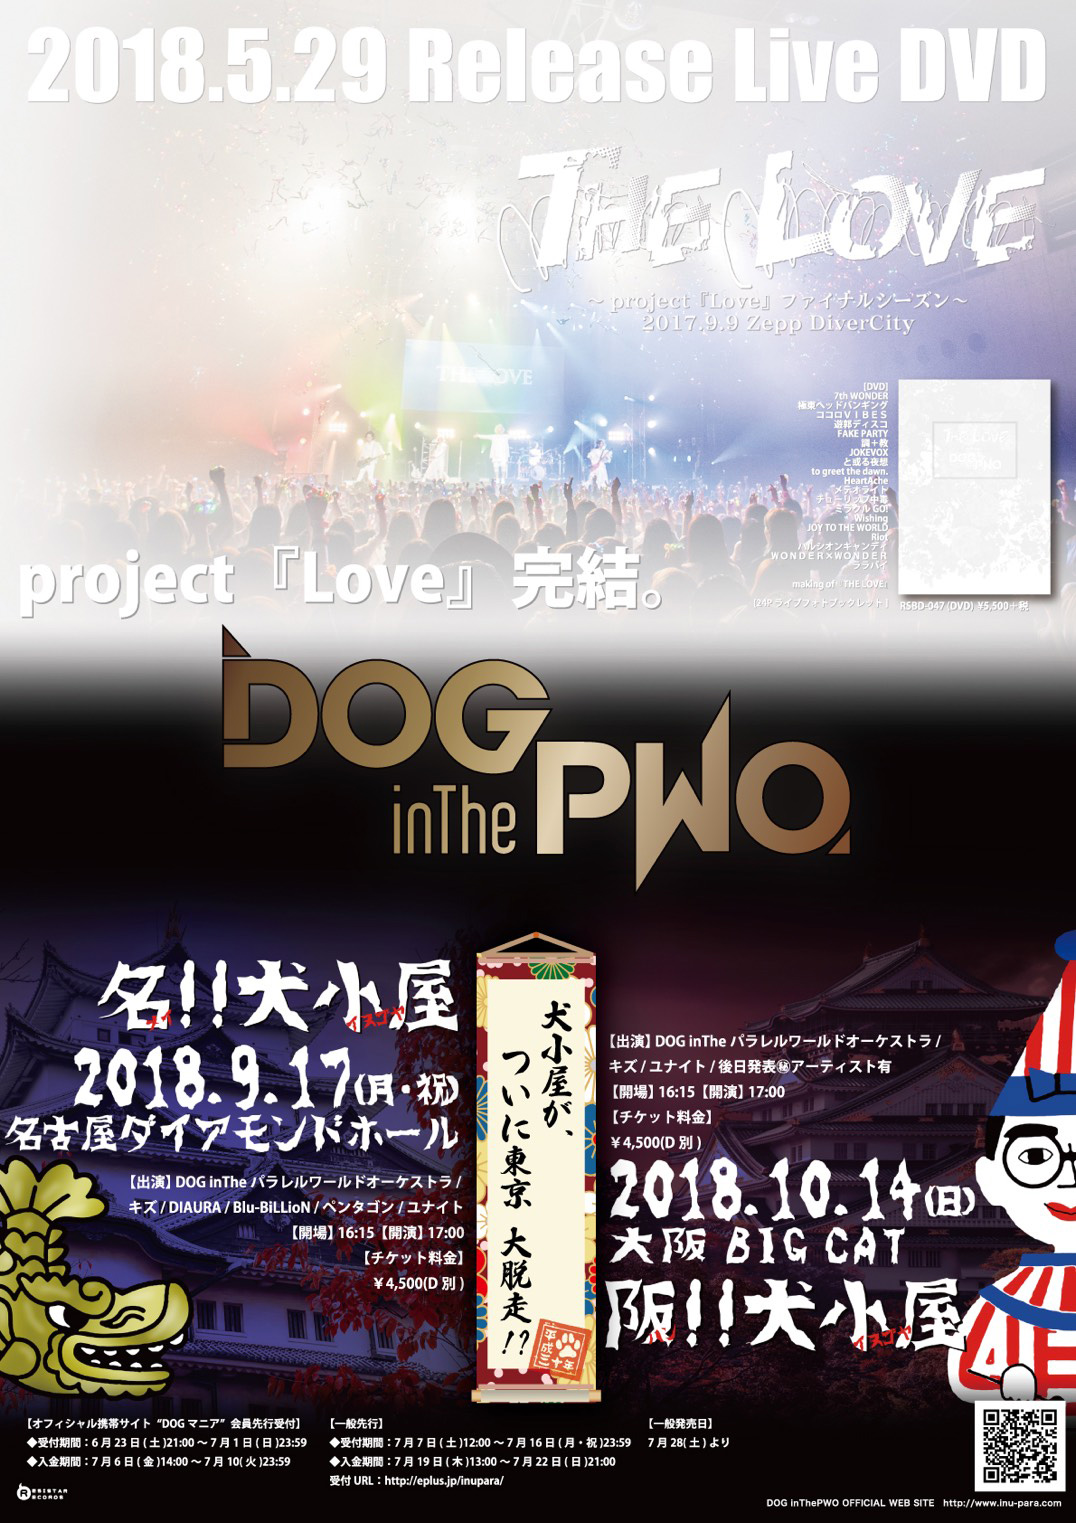 2018.5.29Release Live DVD「THE LOVE ~project『Love』ファイナルシーズン ~2017.9.9 Zepp DiverCity」/犬小屋が首都圏から大脱走!?『名!!犬小屋』『阪!!犬小屋』